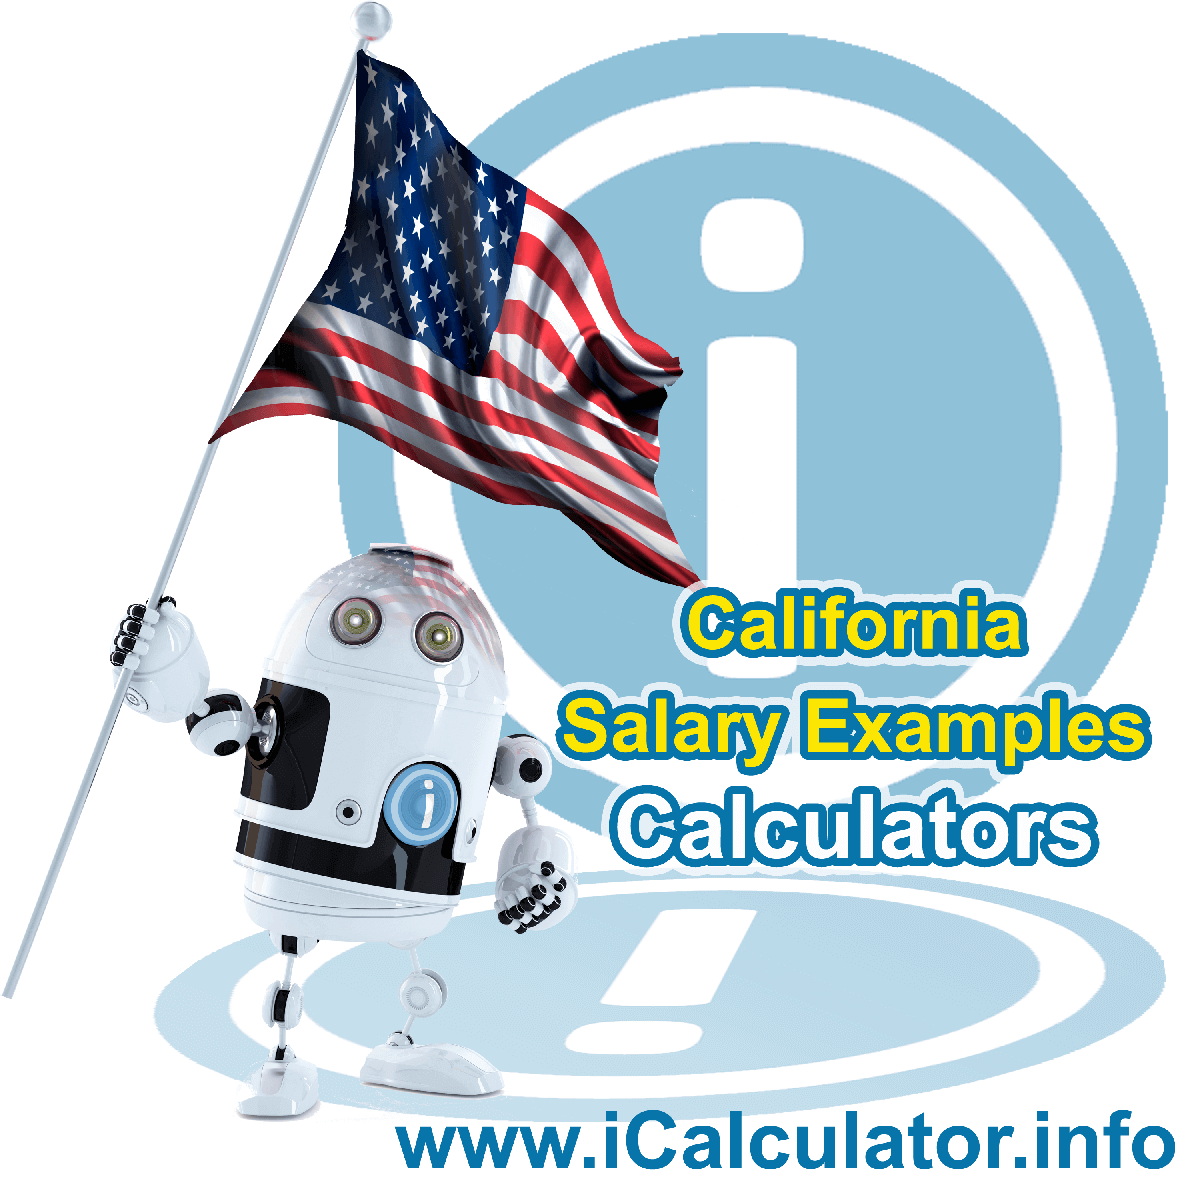 California Salary Example for $270.00 in 2020 | iCalculator | $270.00 salary example for employee and employer paying California State tincome taxes. Detailed salary after tax calculation including California State Tax, Federal State Tax, Medicare Deductions, Social Security, Capital Gains and other income tax and salary deductions complete with supporting California state tax tables